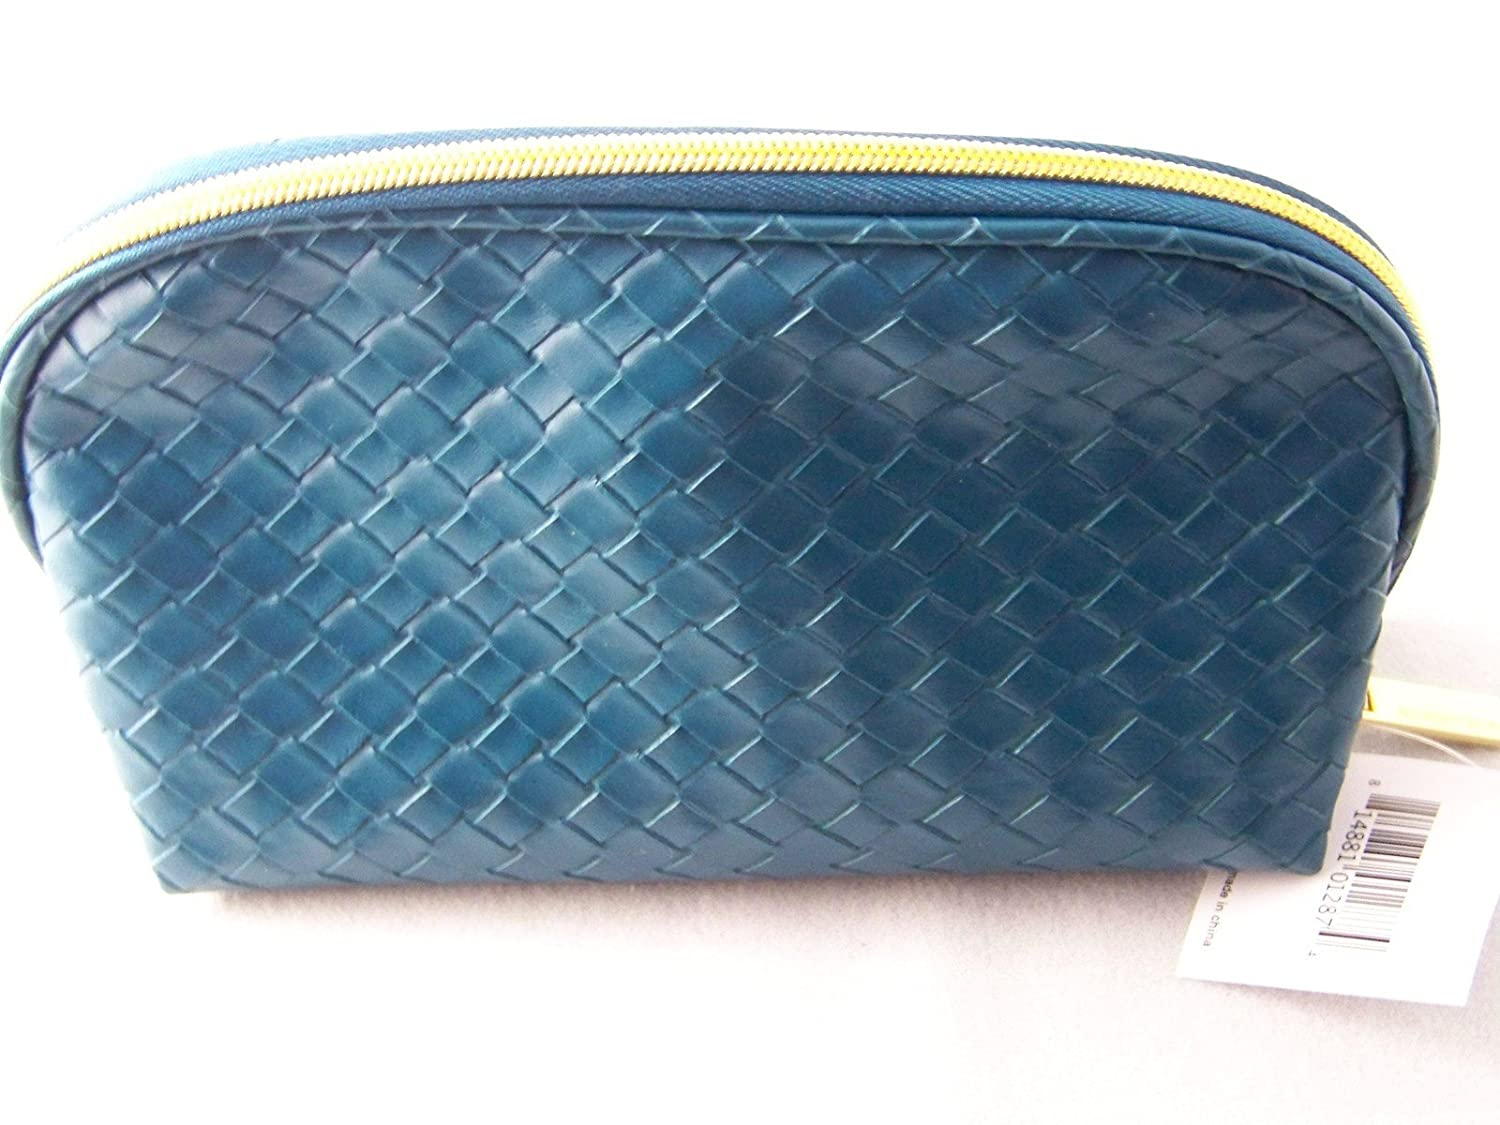 Nordstrom Faux Leather Blue/Green Cosmetic Bag New 2013